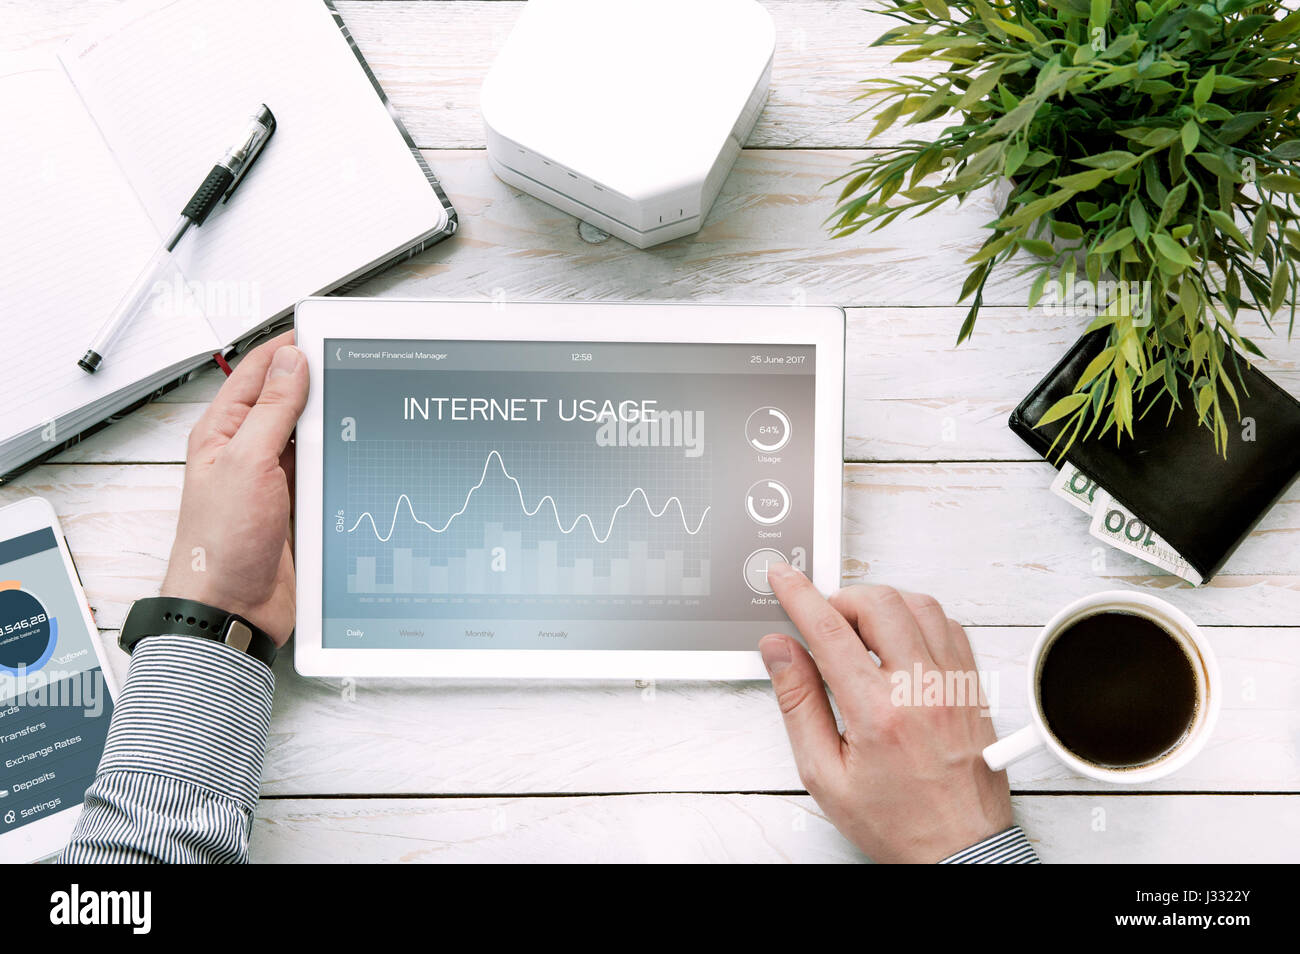 Man holds tablet pc with internet usage application made in graphic program Stock Photo